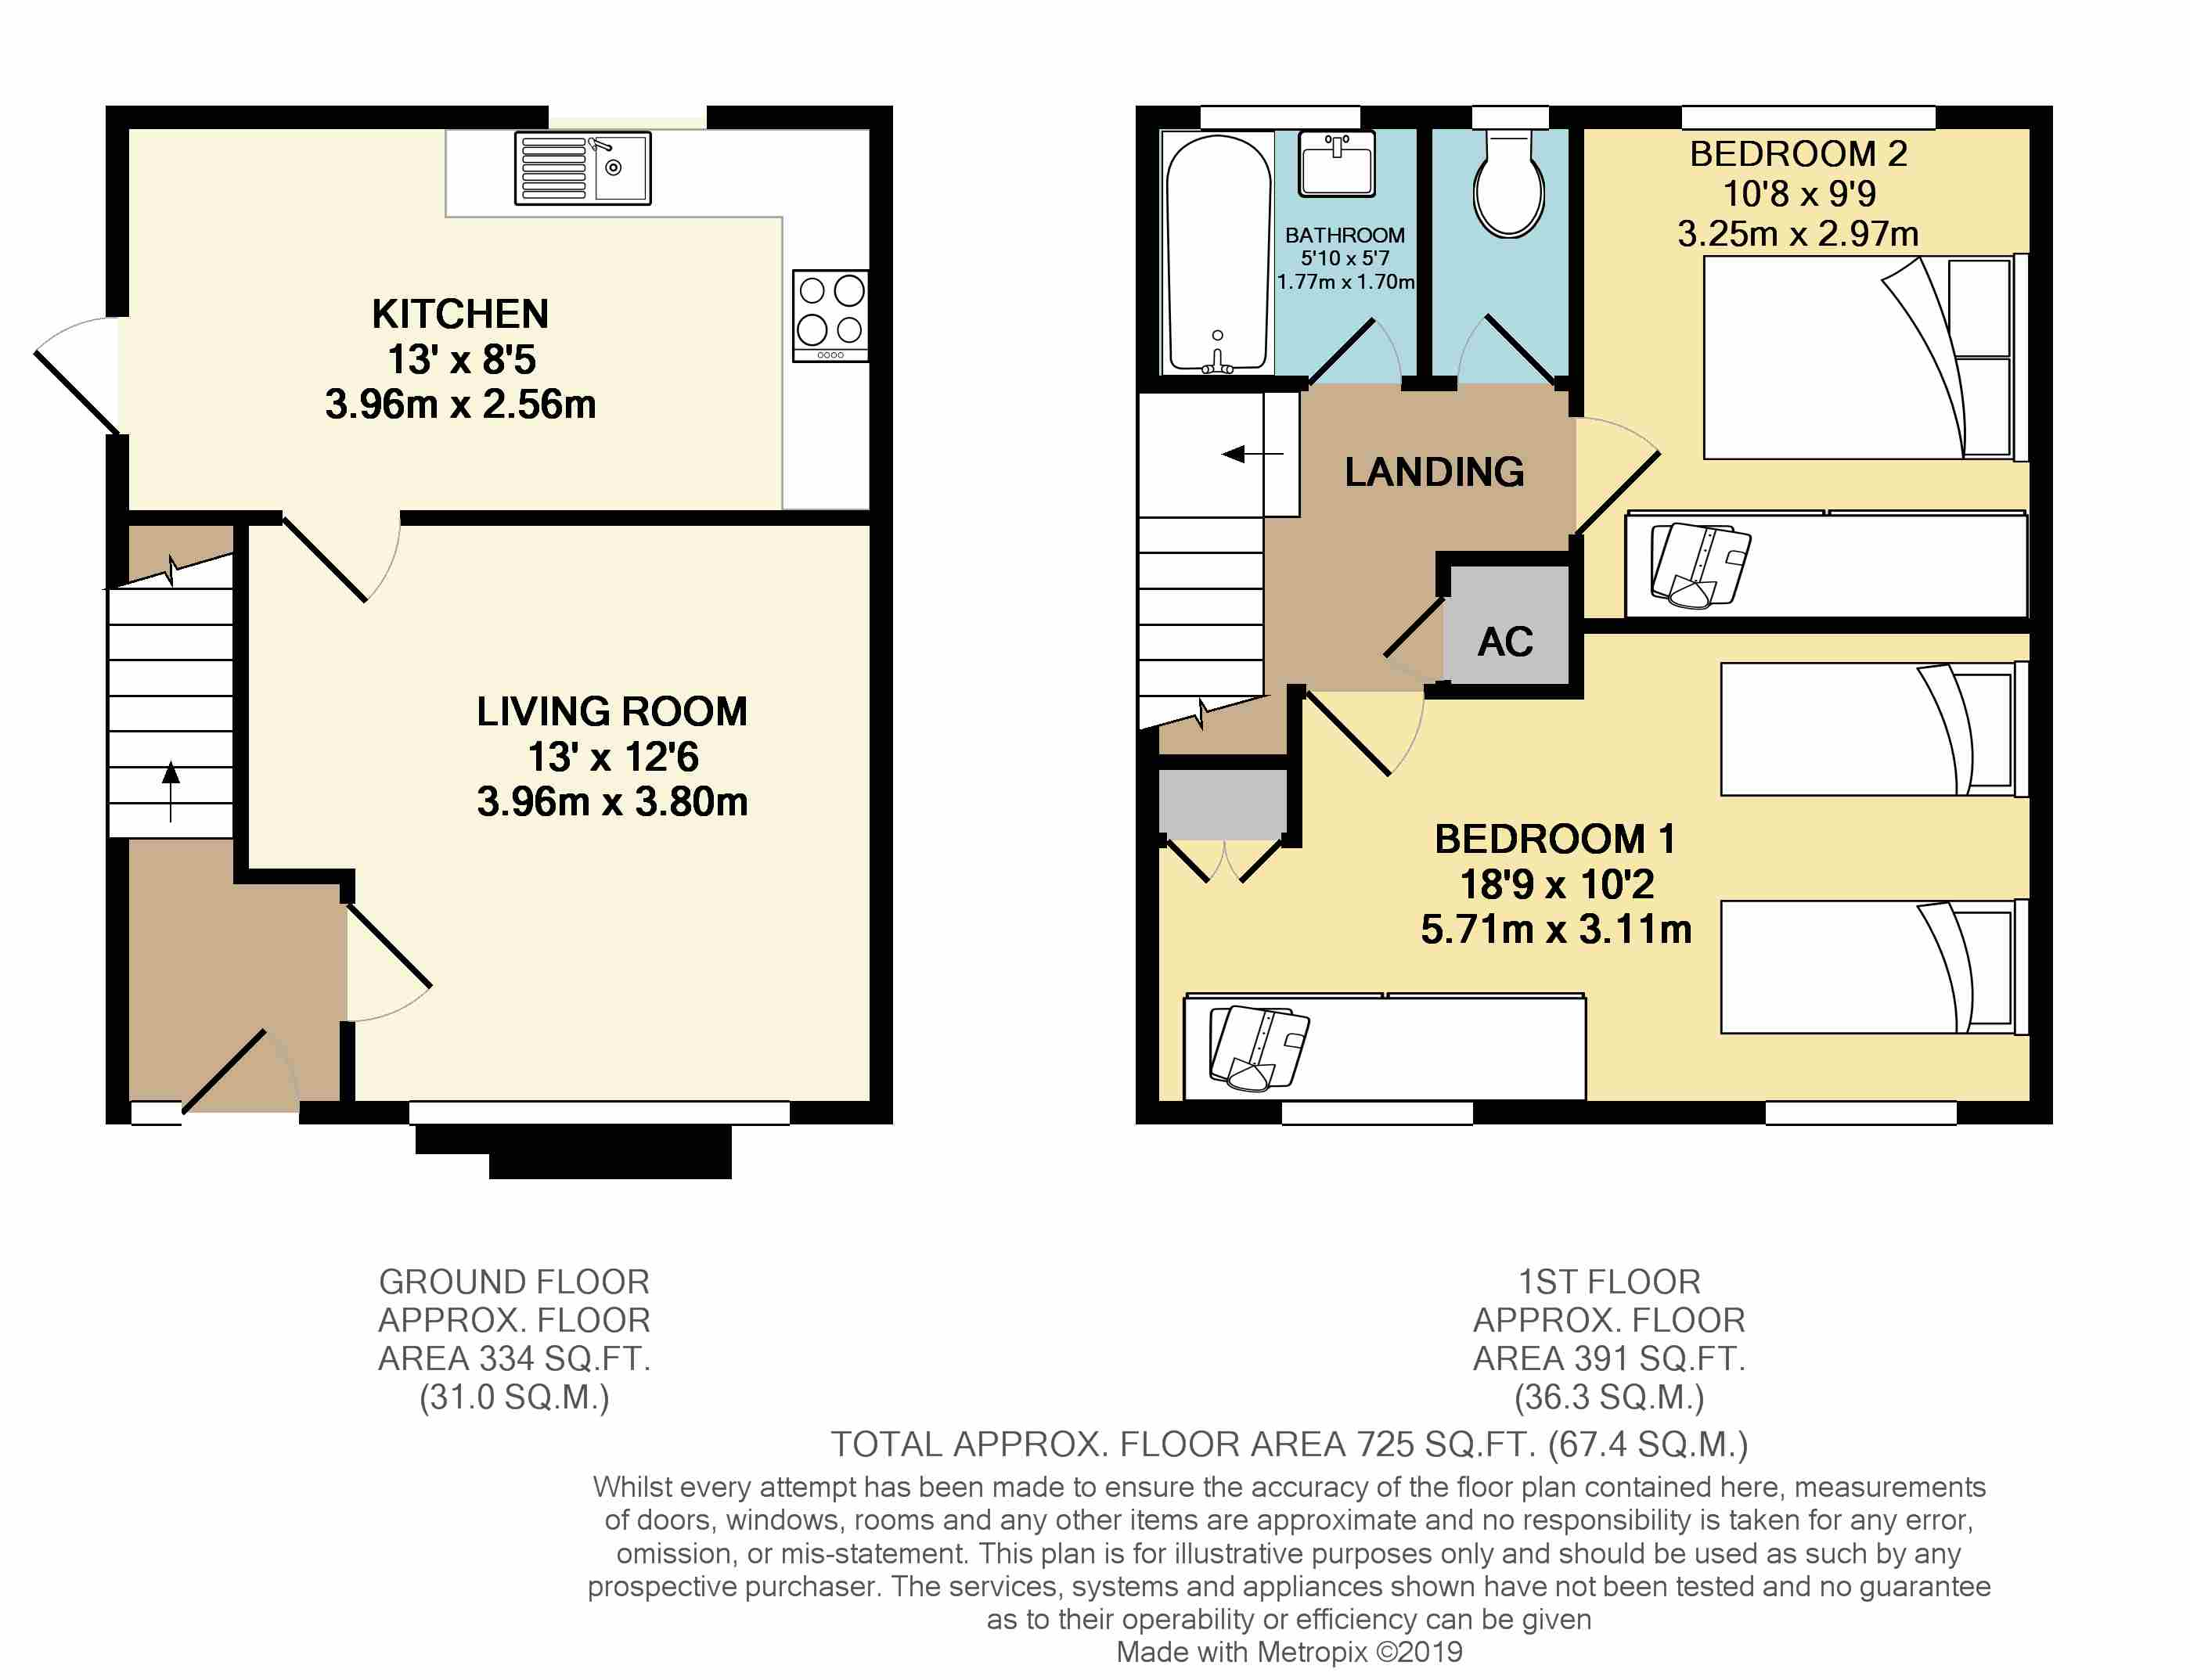 Floorplans For Carmelite Close, Harrow, Middlesex, HA3 5NL